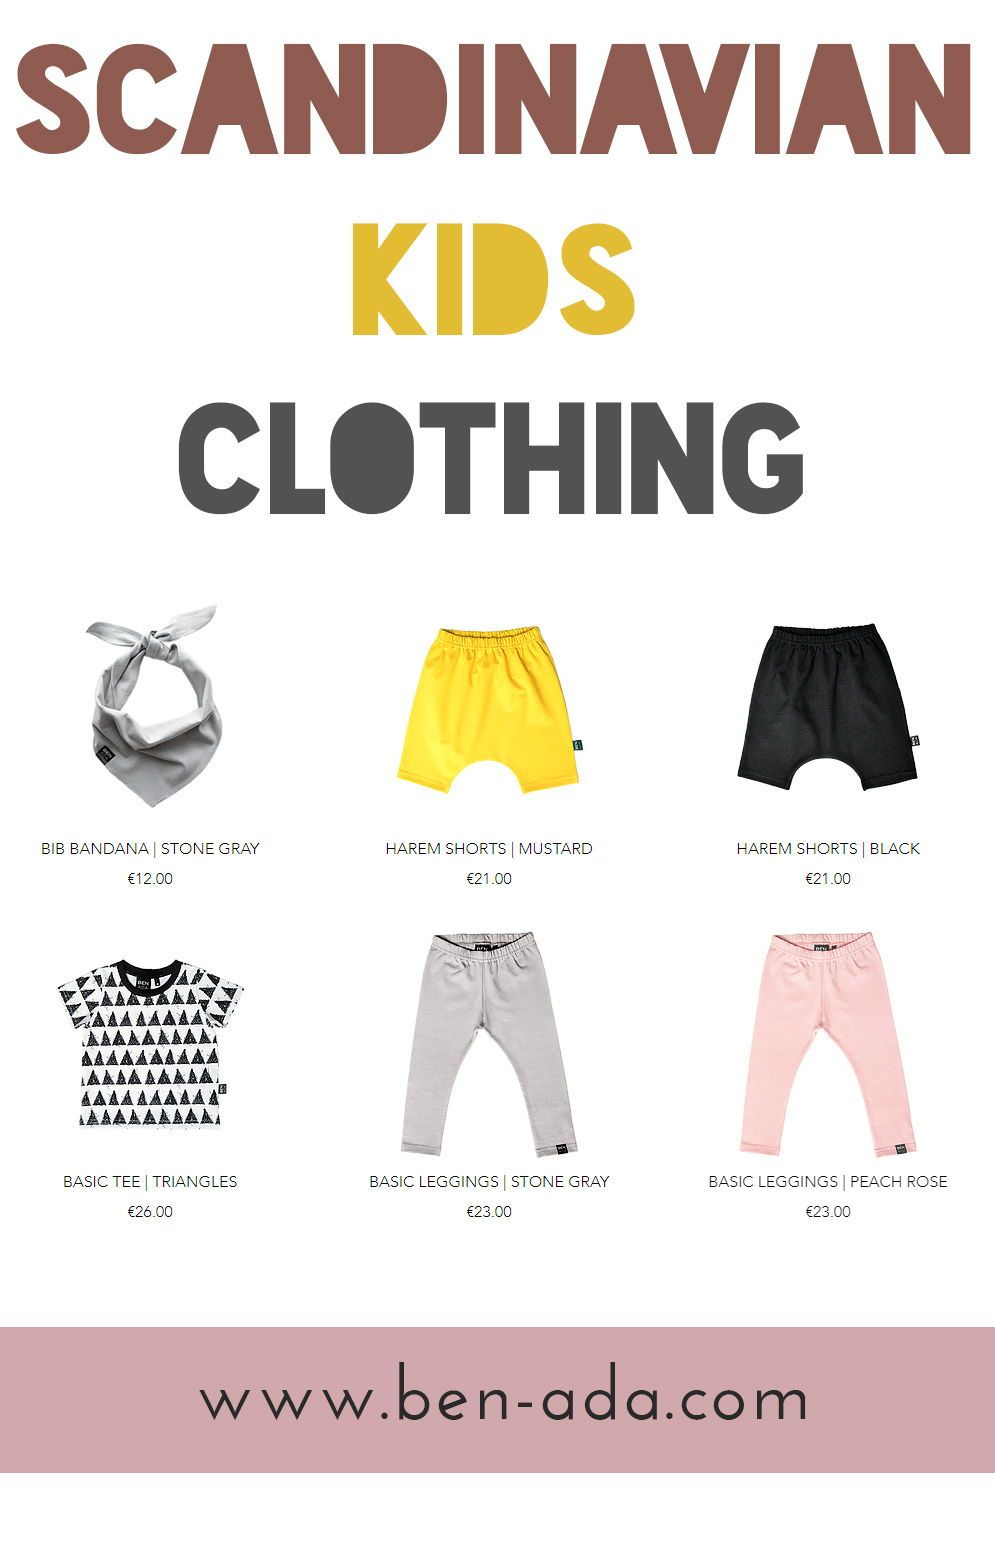 I Love This Modern Scandinavian Looking Kids Clothing Brand The Design Is So Classical And The Col Scandinavian Kids Clothes Kids Clothing Brands Kids Outfits